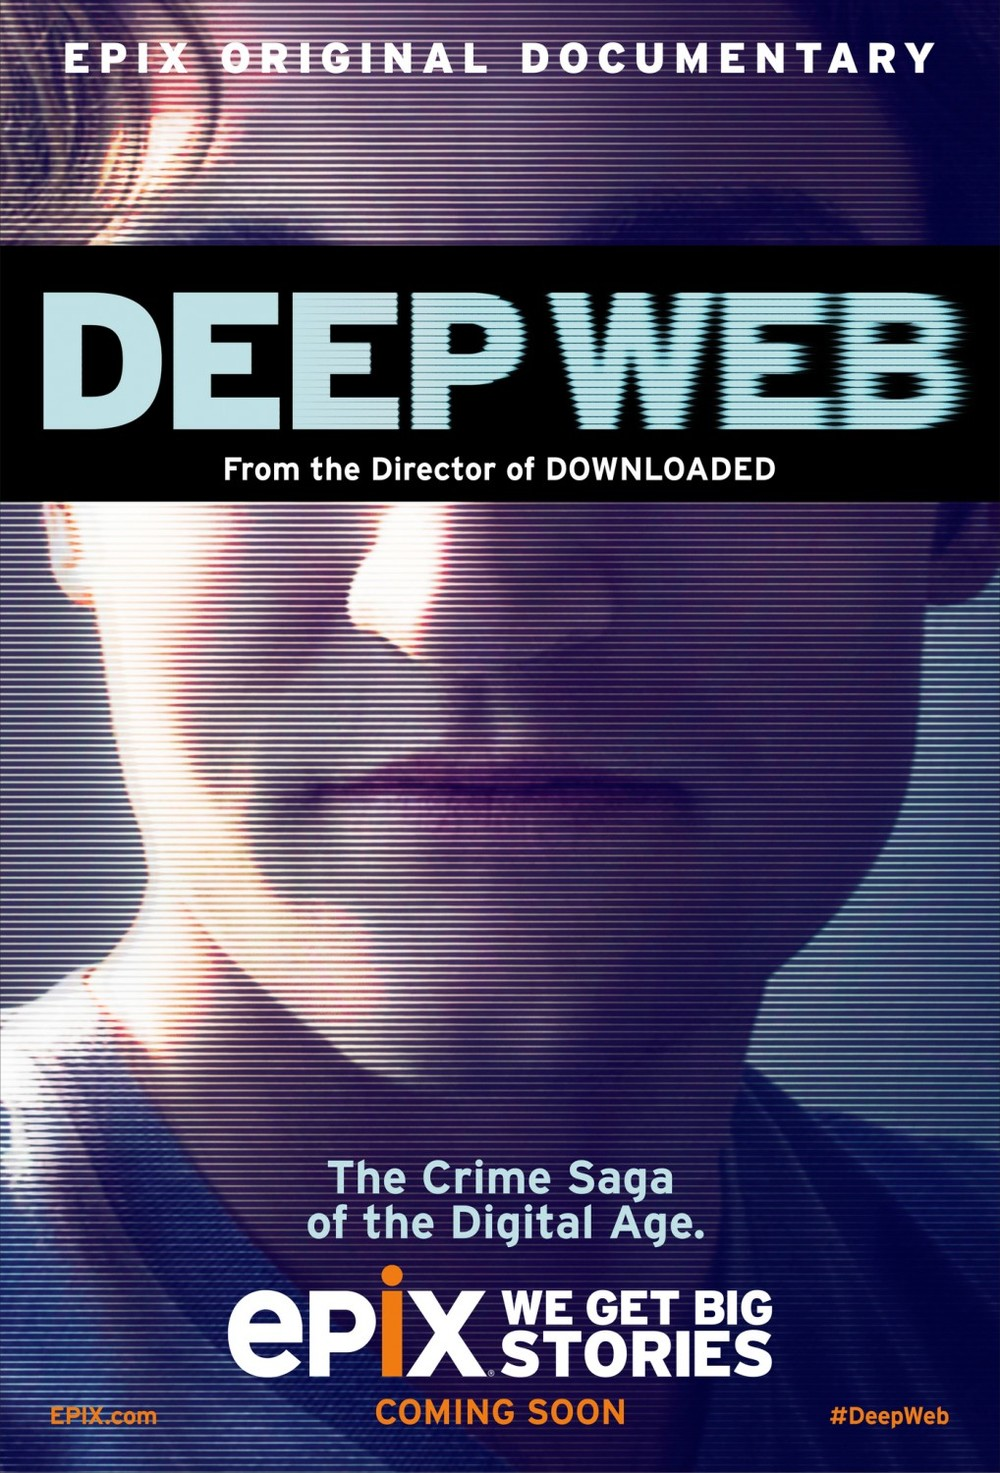 CLICK HERE TO SEE 'DEEP WEB'